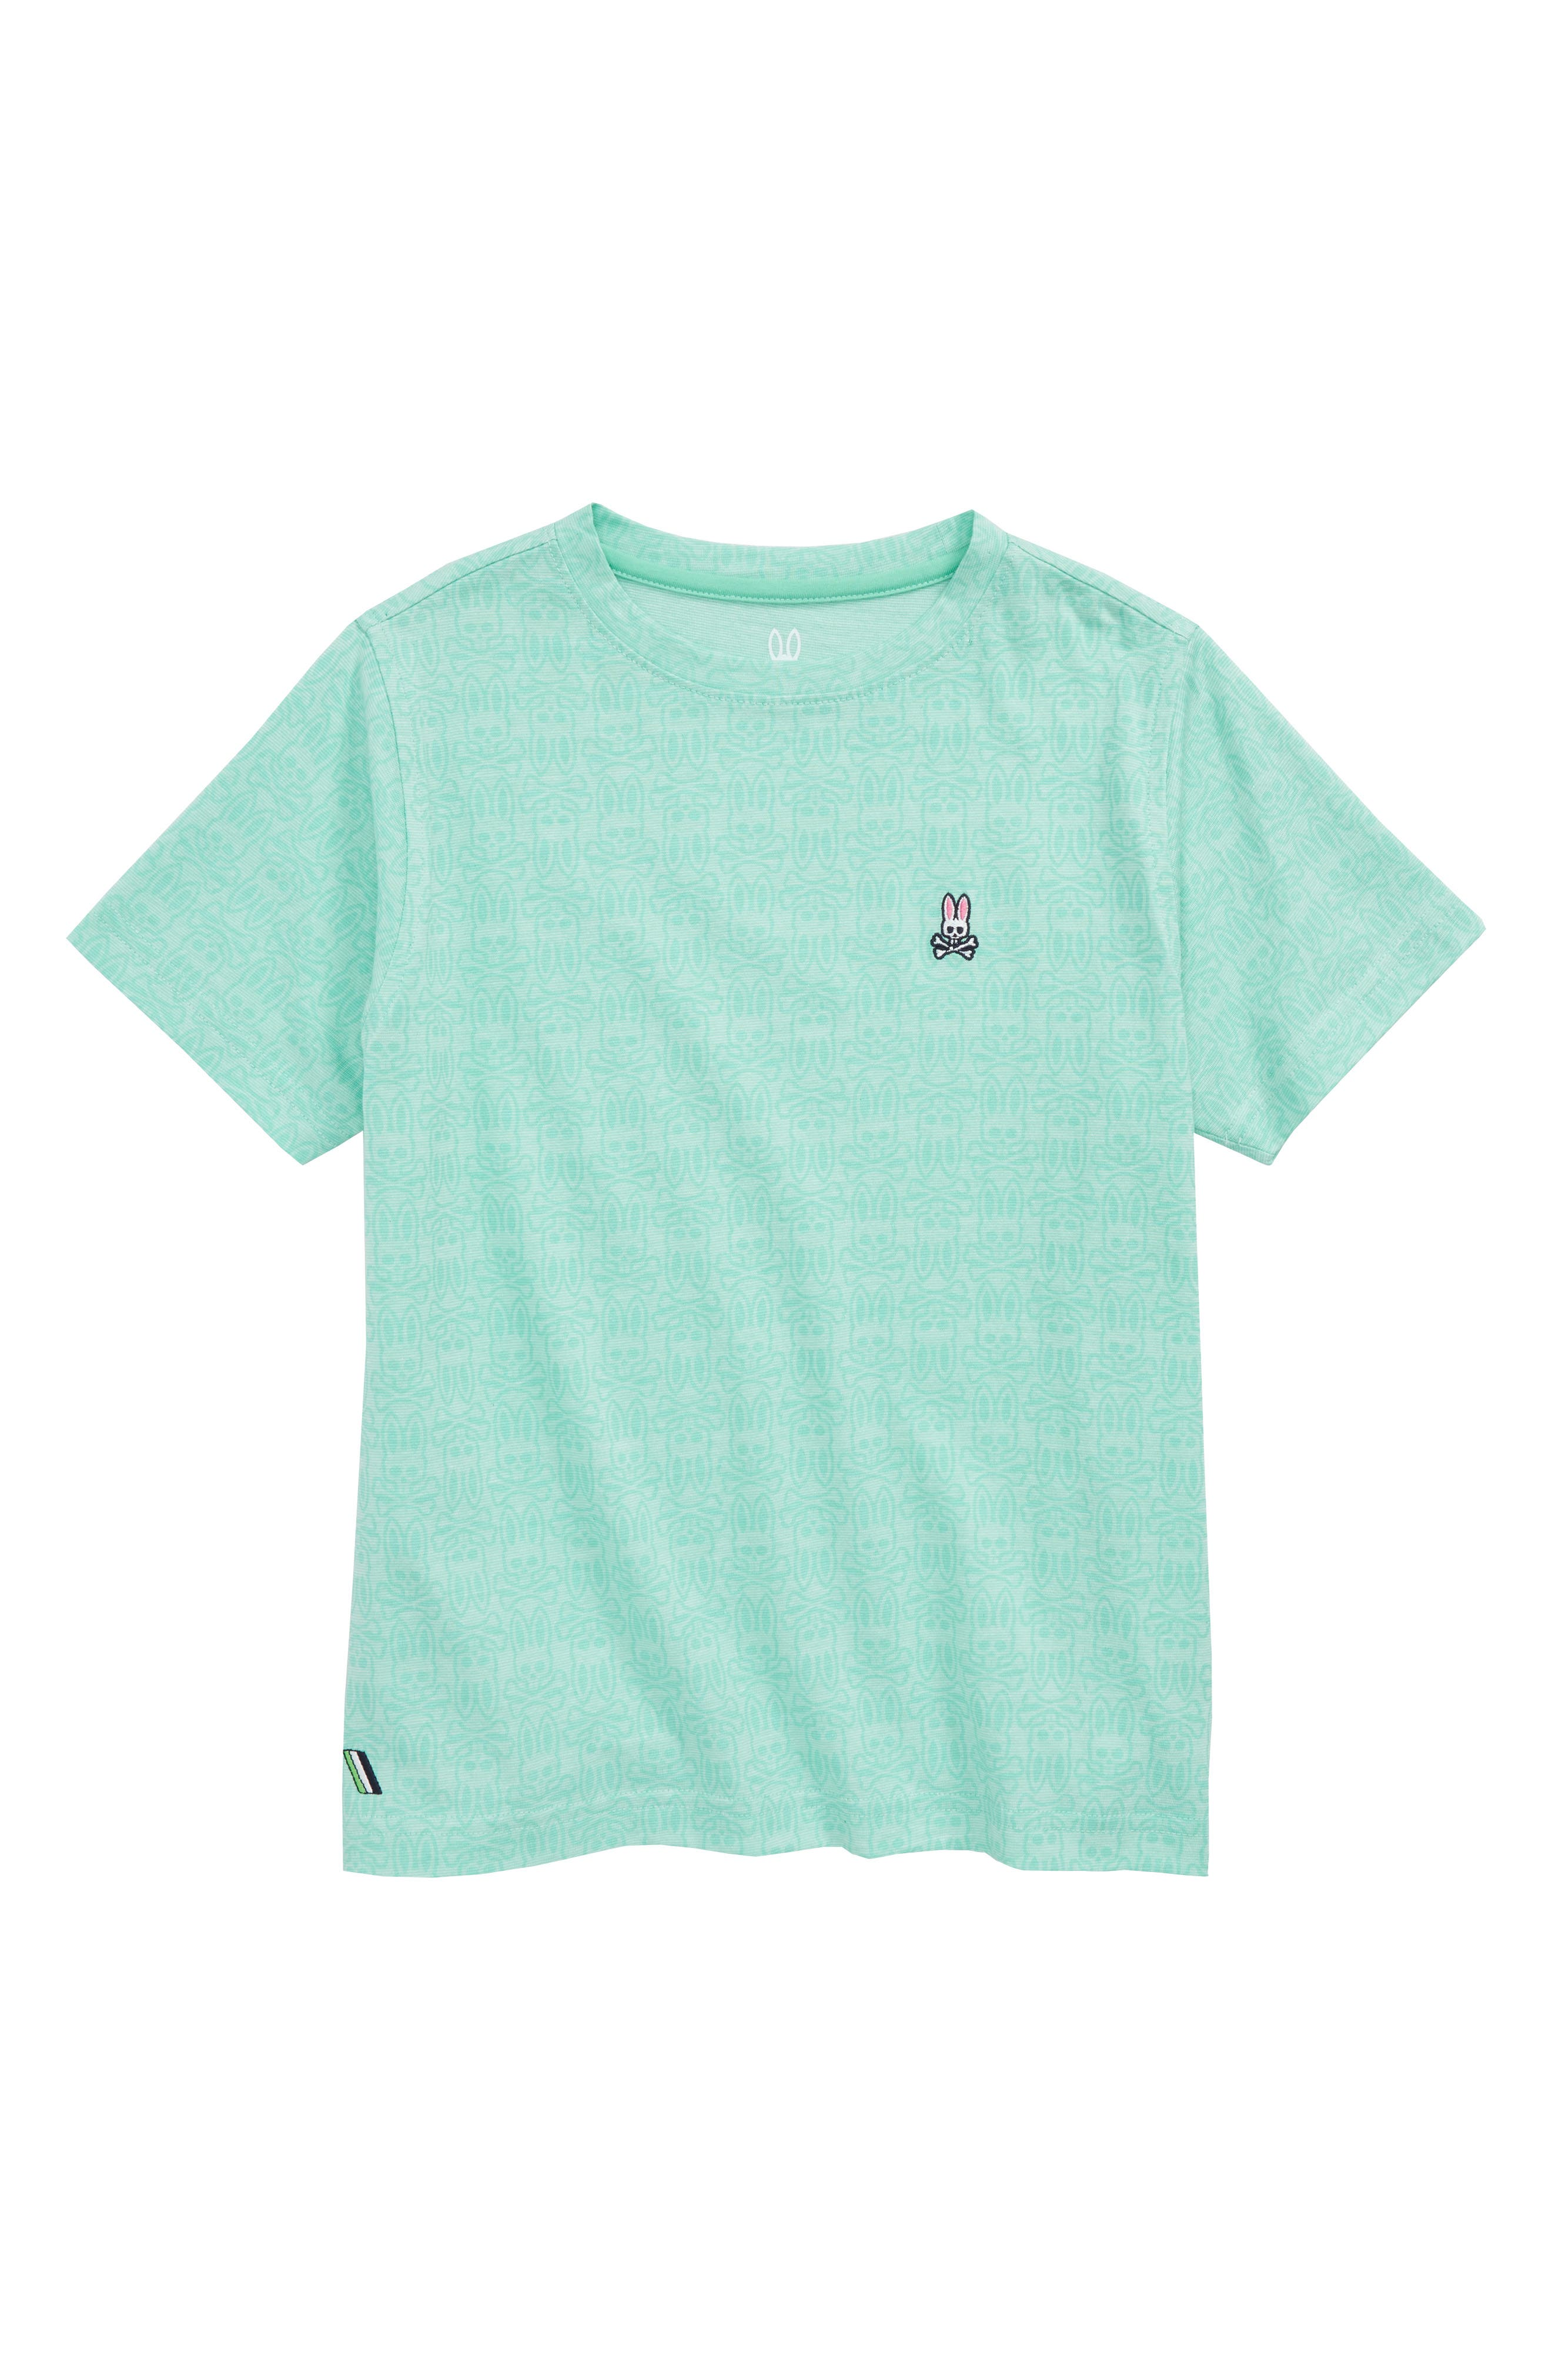 PSYCHO BUNNY Fareham T-Shirt, Main, color, 300